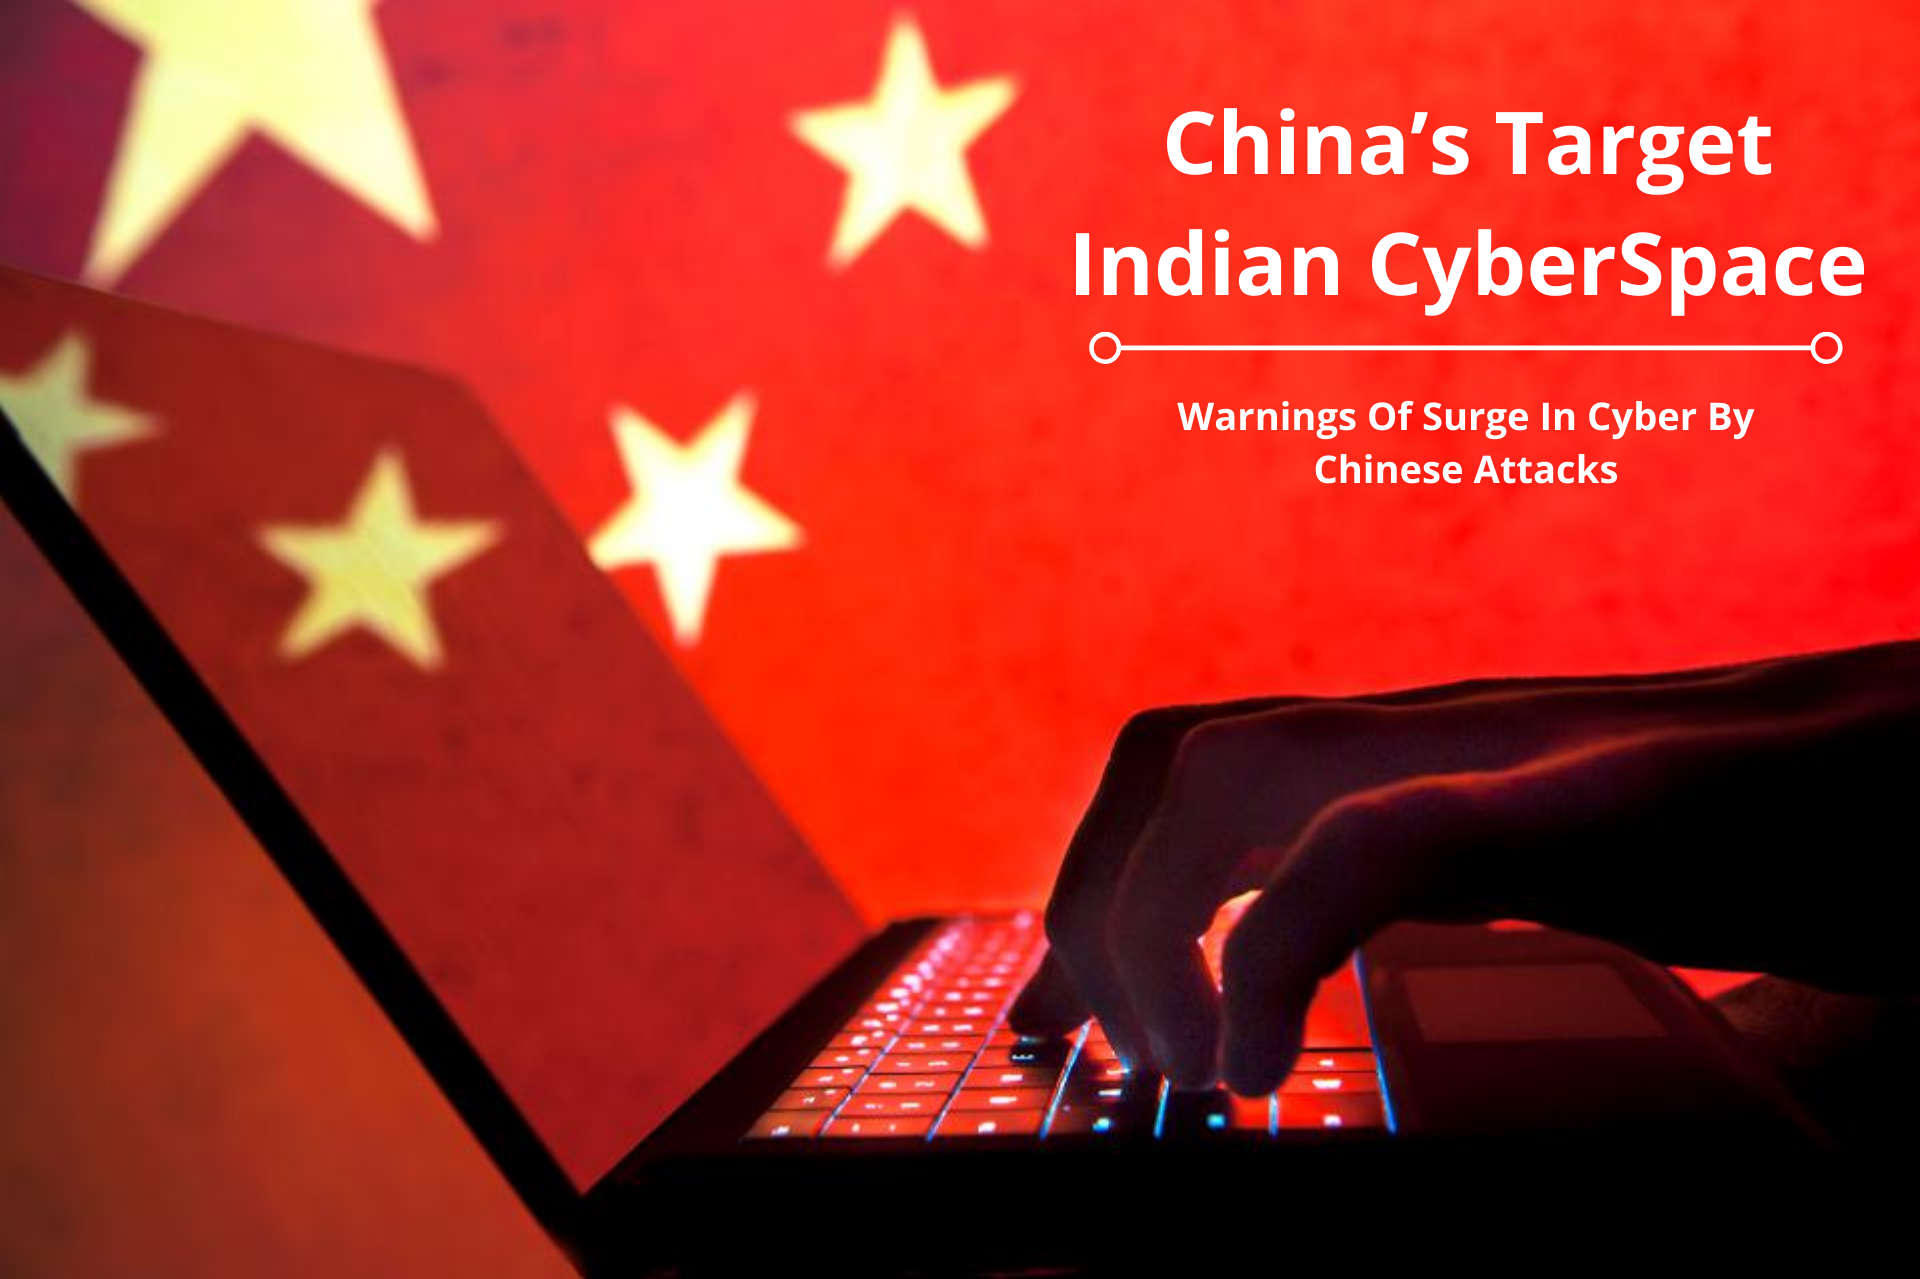 Chinese Cyber-attacks: Indian Firms on Alert, Vulnerabilities Amid by China's Cyber Threat